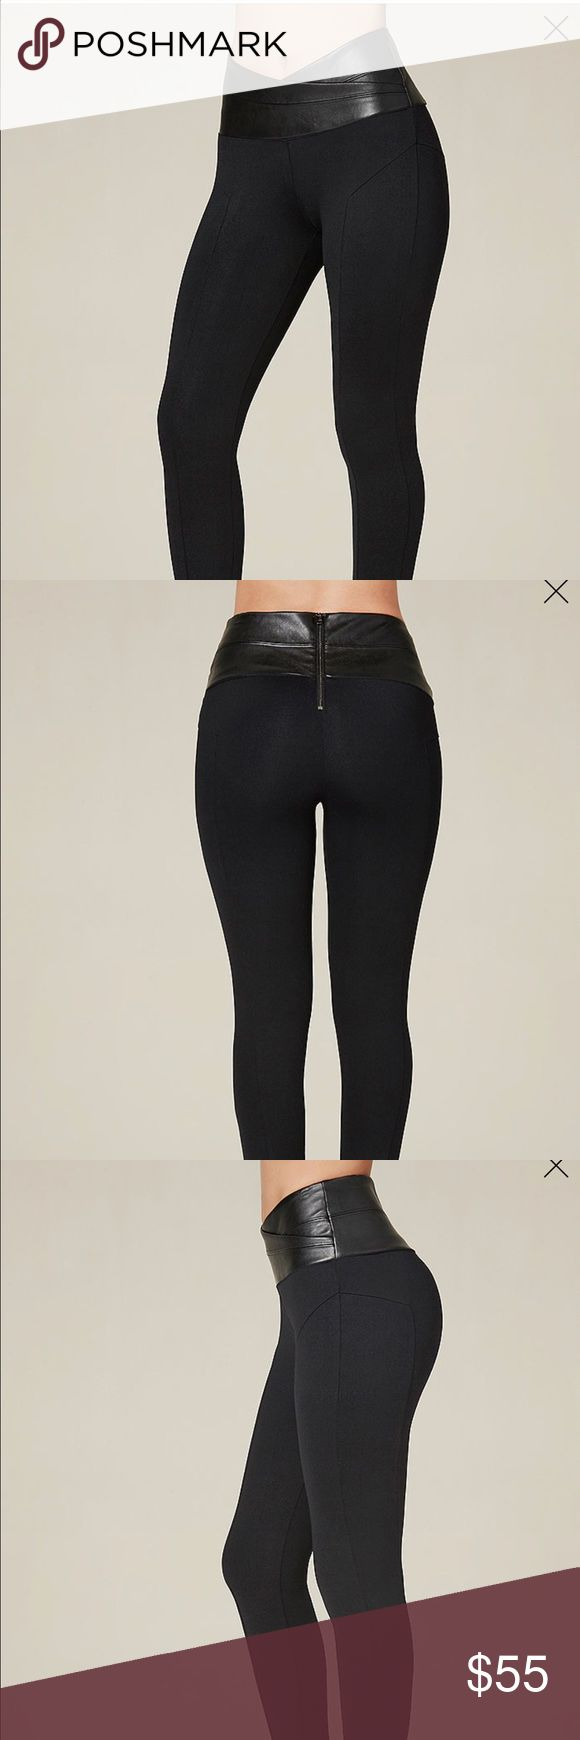 Bebe Super Curve Leggings Amazing jersey leggings rocking angled seams and sleek faux leather waistband. Stunning curve coverage. Exposed back zip closure.  ⚜️ONLY WORN ONCE⚜️. Comes from a non smoking, no pet home. bebe Pants Leggings